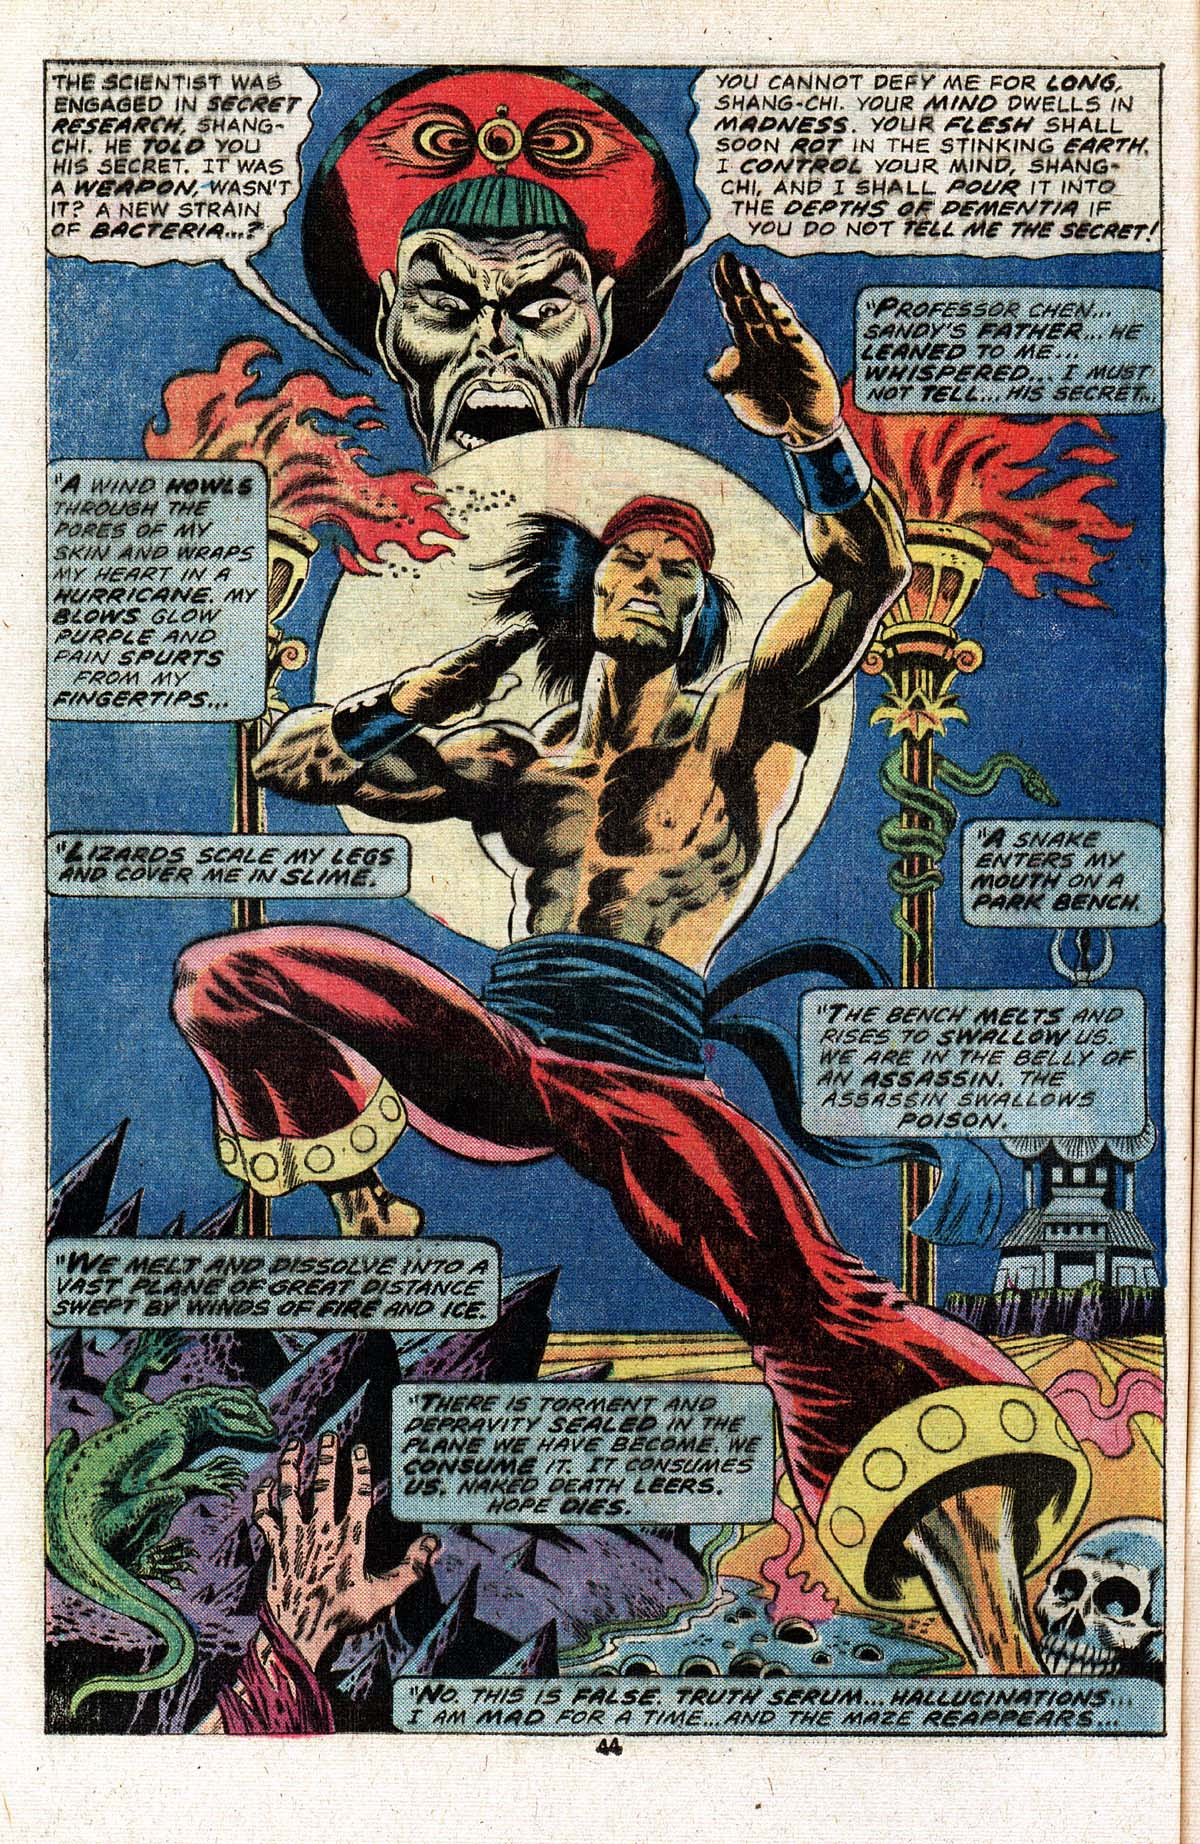 Read online Giant-Size Master of Kung Fu comic -  Issue #2 - 37